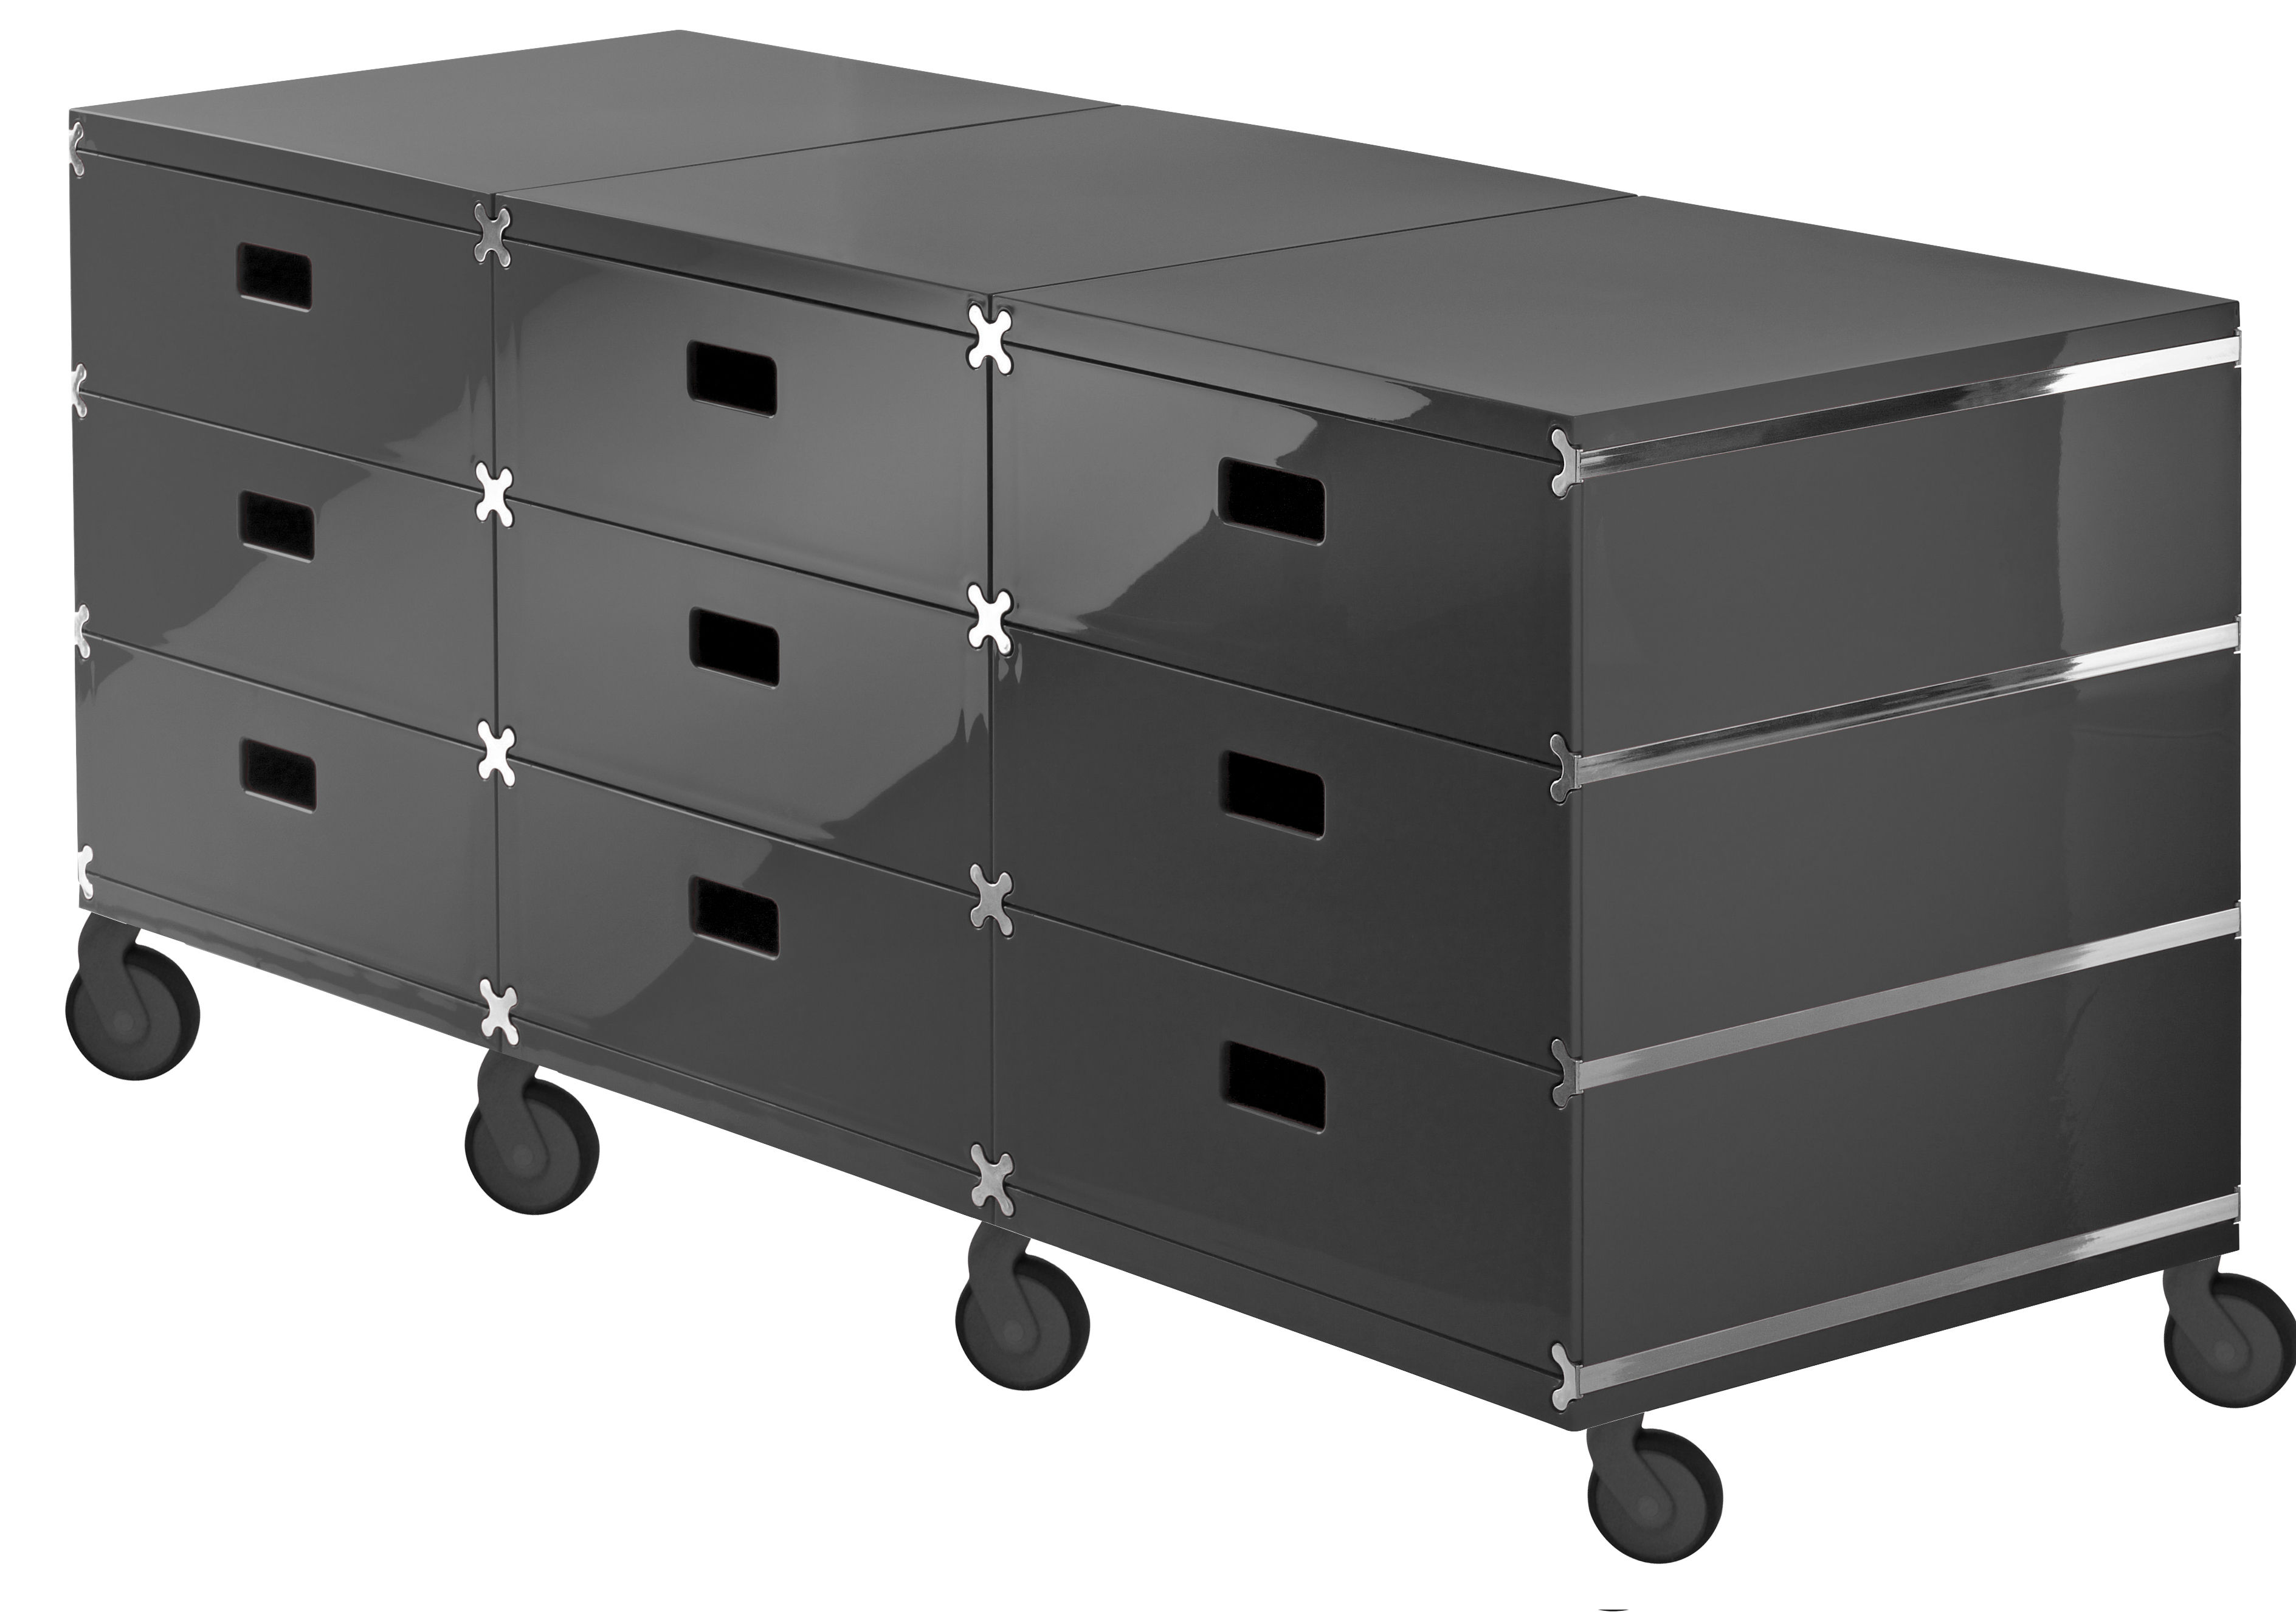 rangement plus unit 9 tiroirs sur roulettes gris anthracite magis. Black Bedroom Furniture Sets. Home Design Ideas